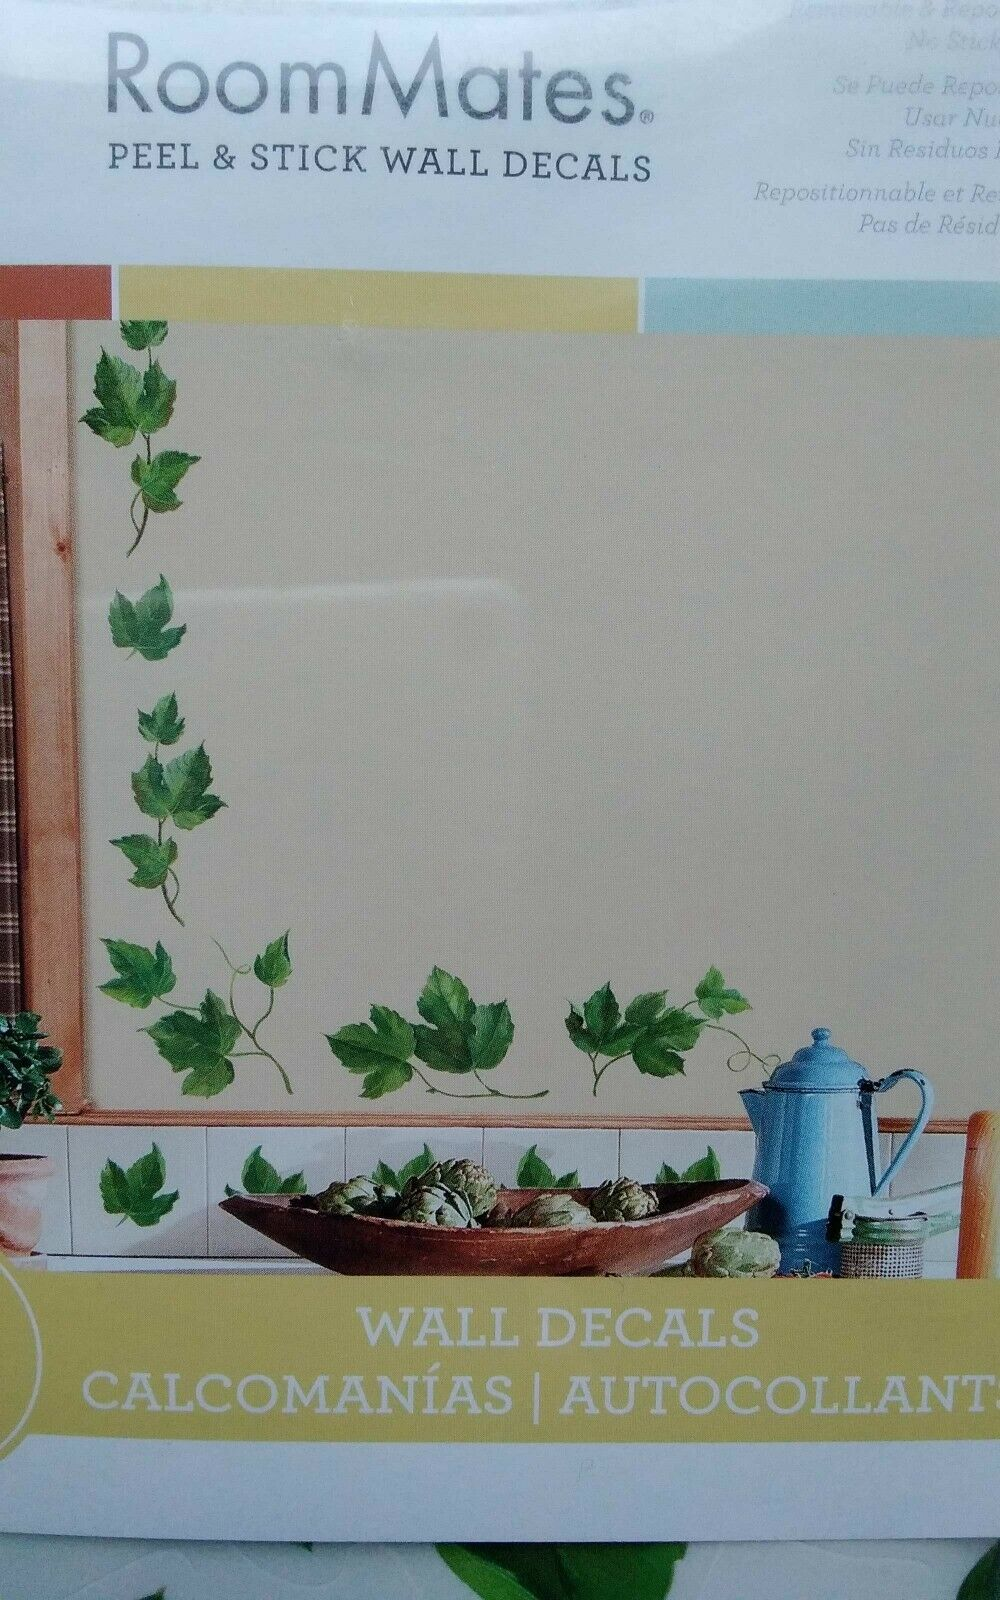 38 New Evergreen Ivy Wall Decals Country Kitchen Decor Green Leaves Border New For Sale